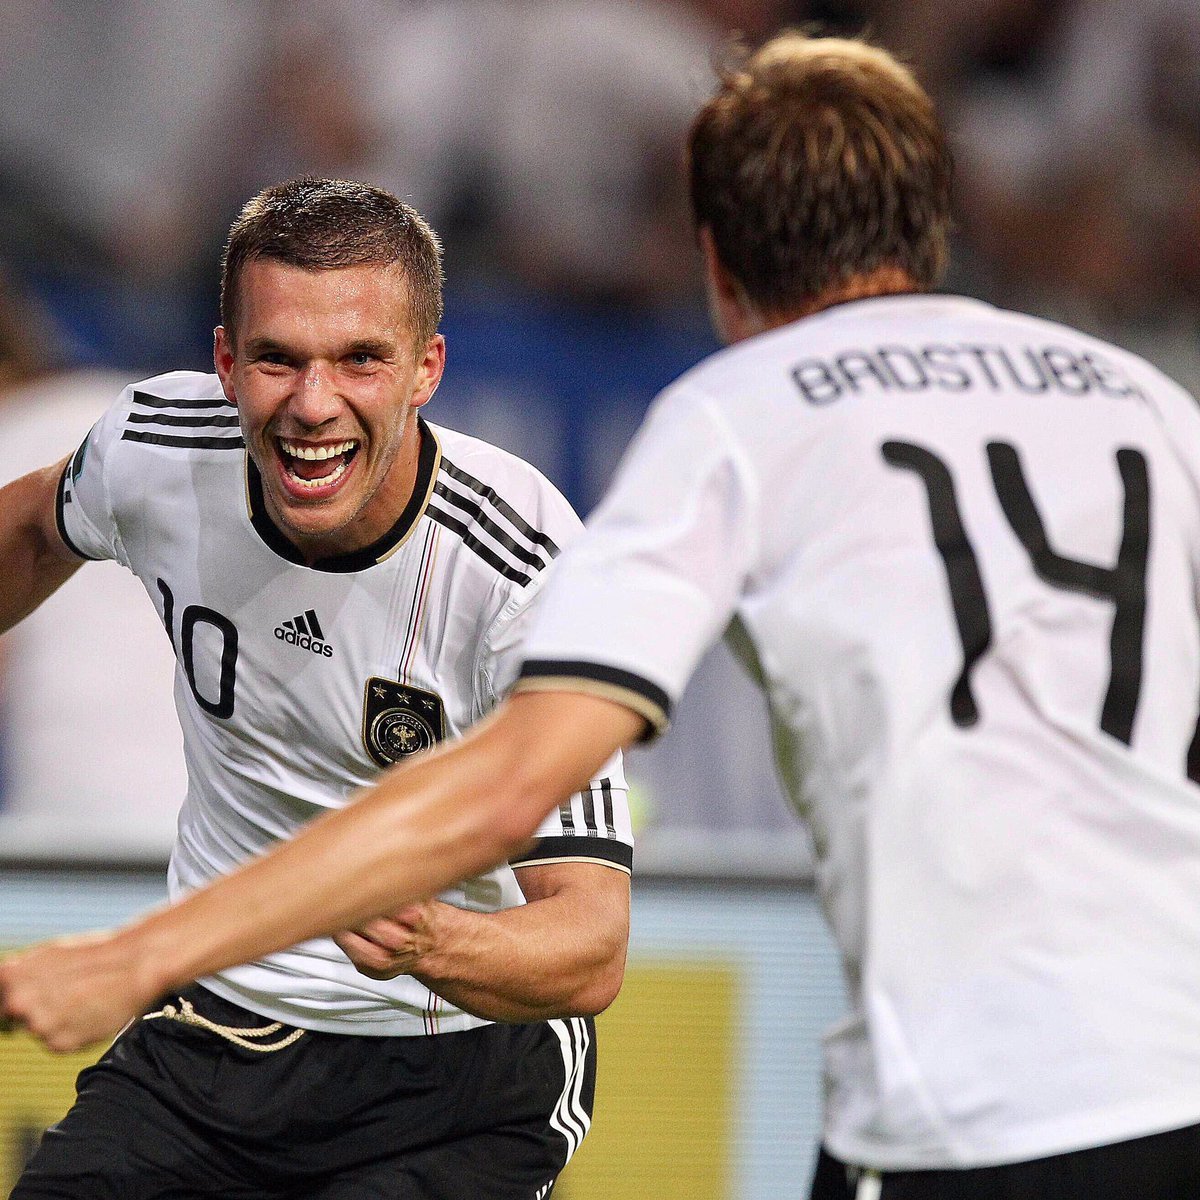 Was always a pleasure to play with you for @DFB_Team_EN 😀👍 @Podolski10...